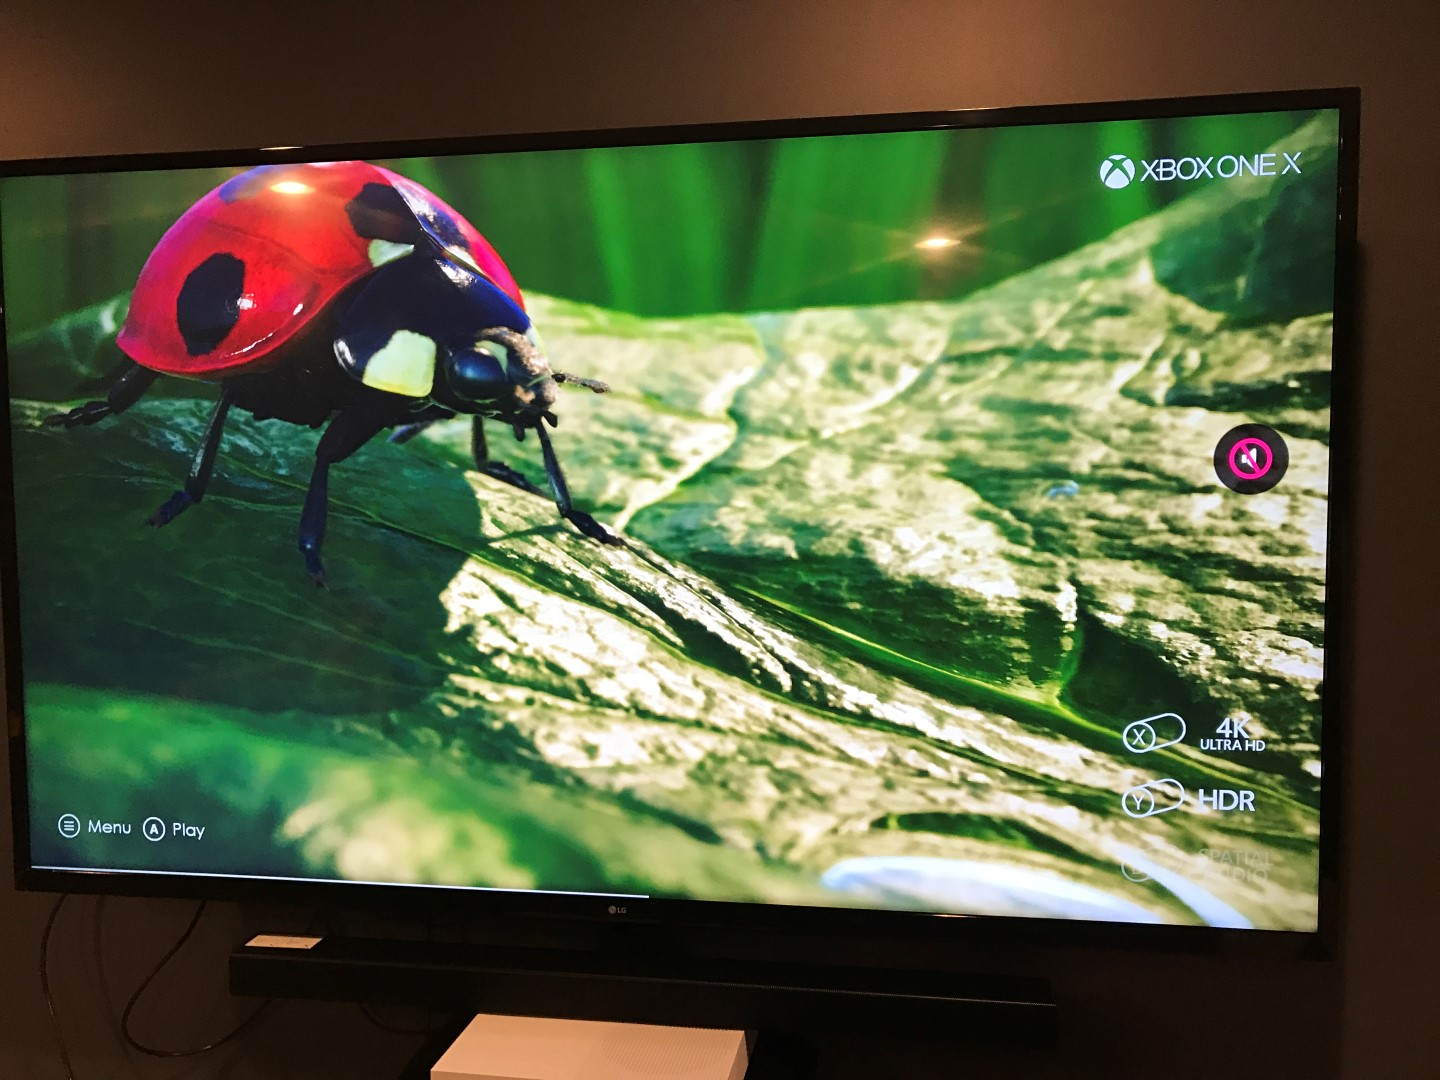 LG 65UJ6200 TV 4k and HD